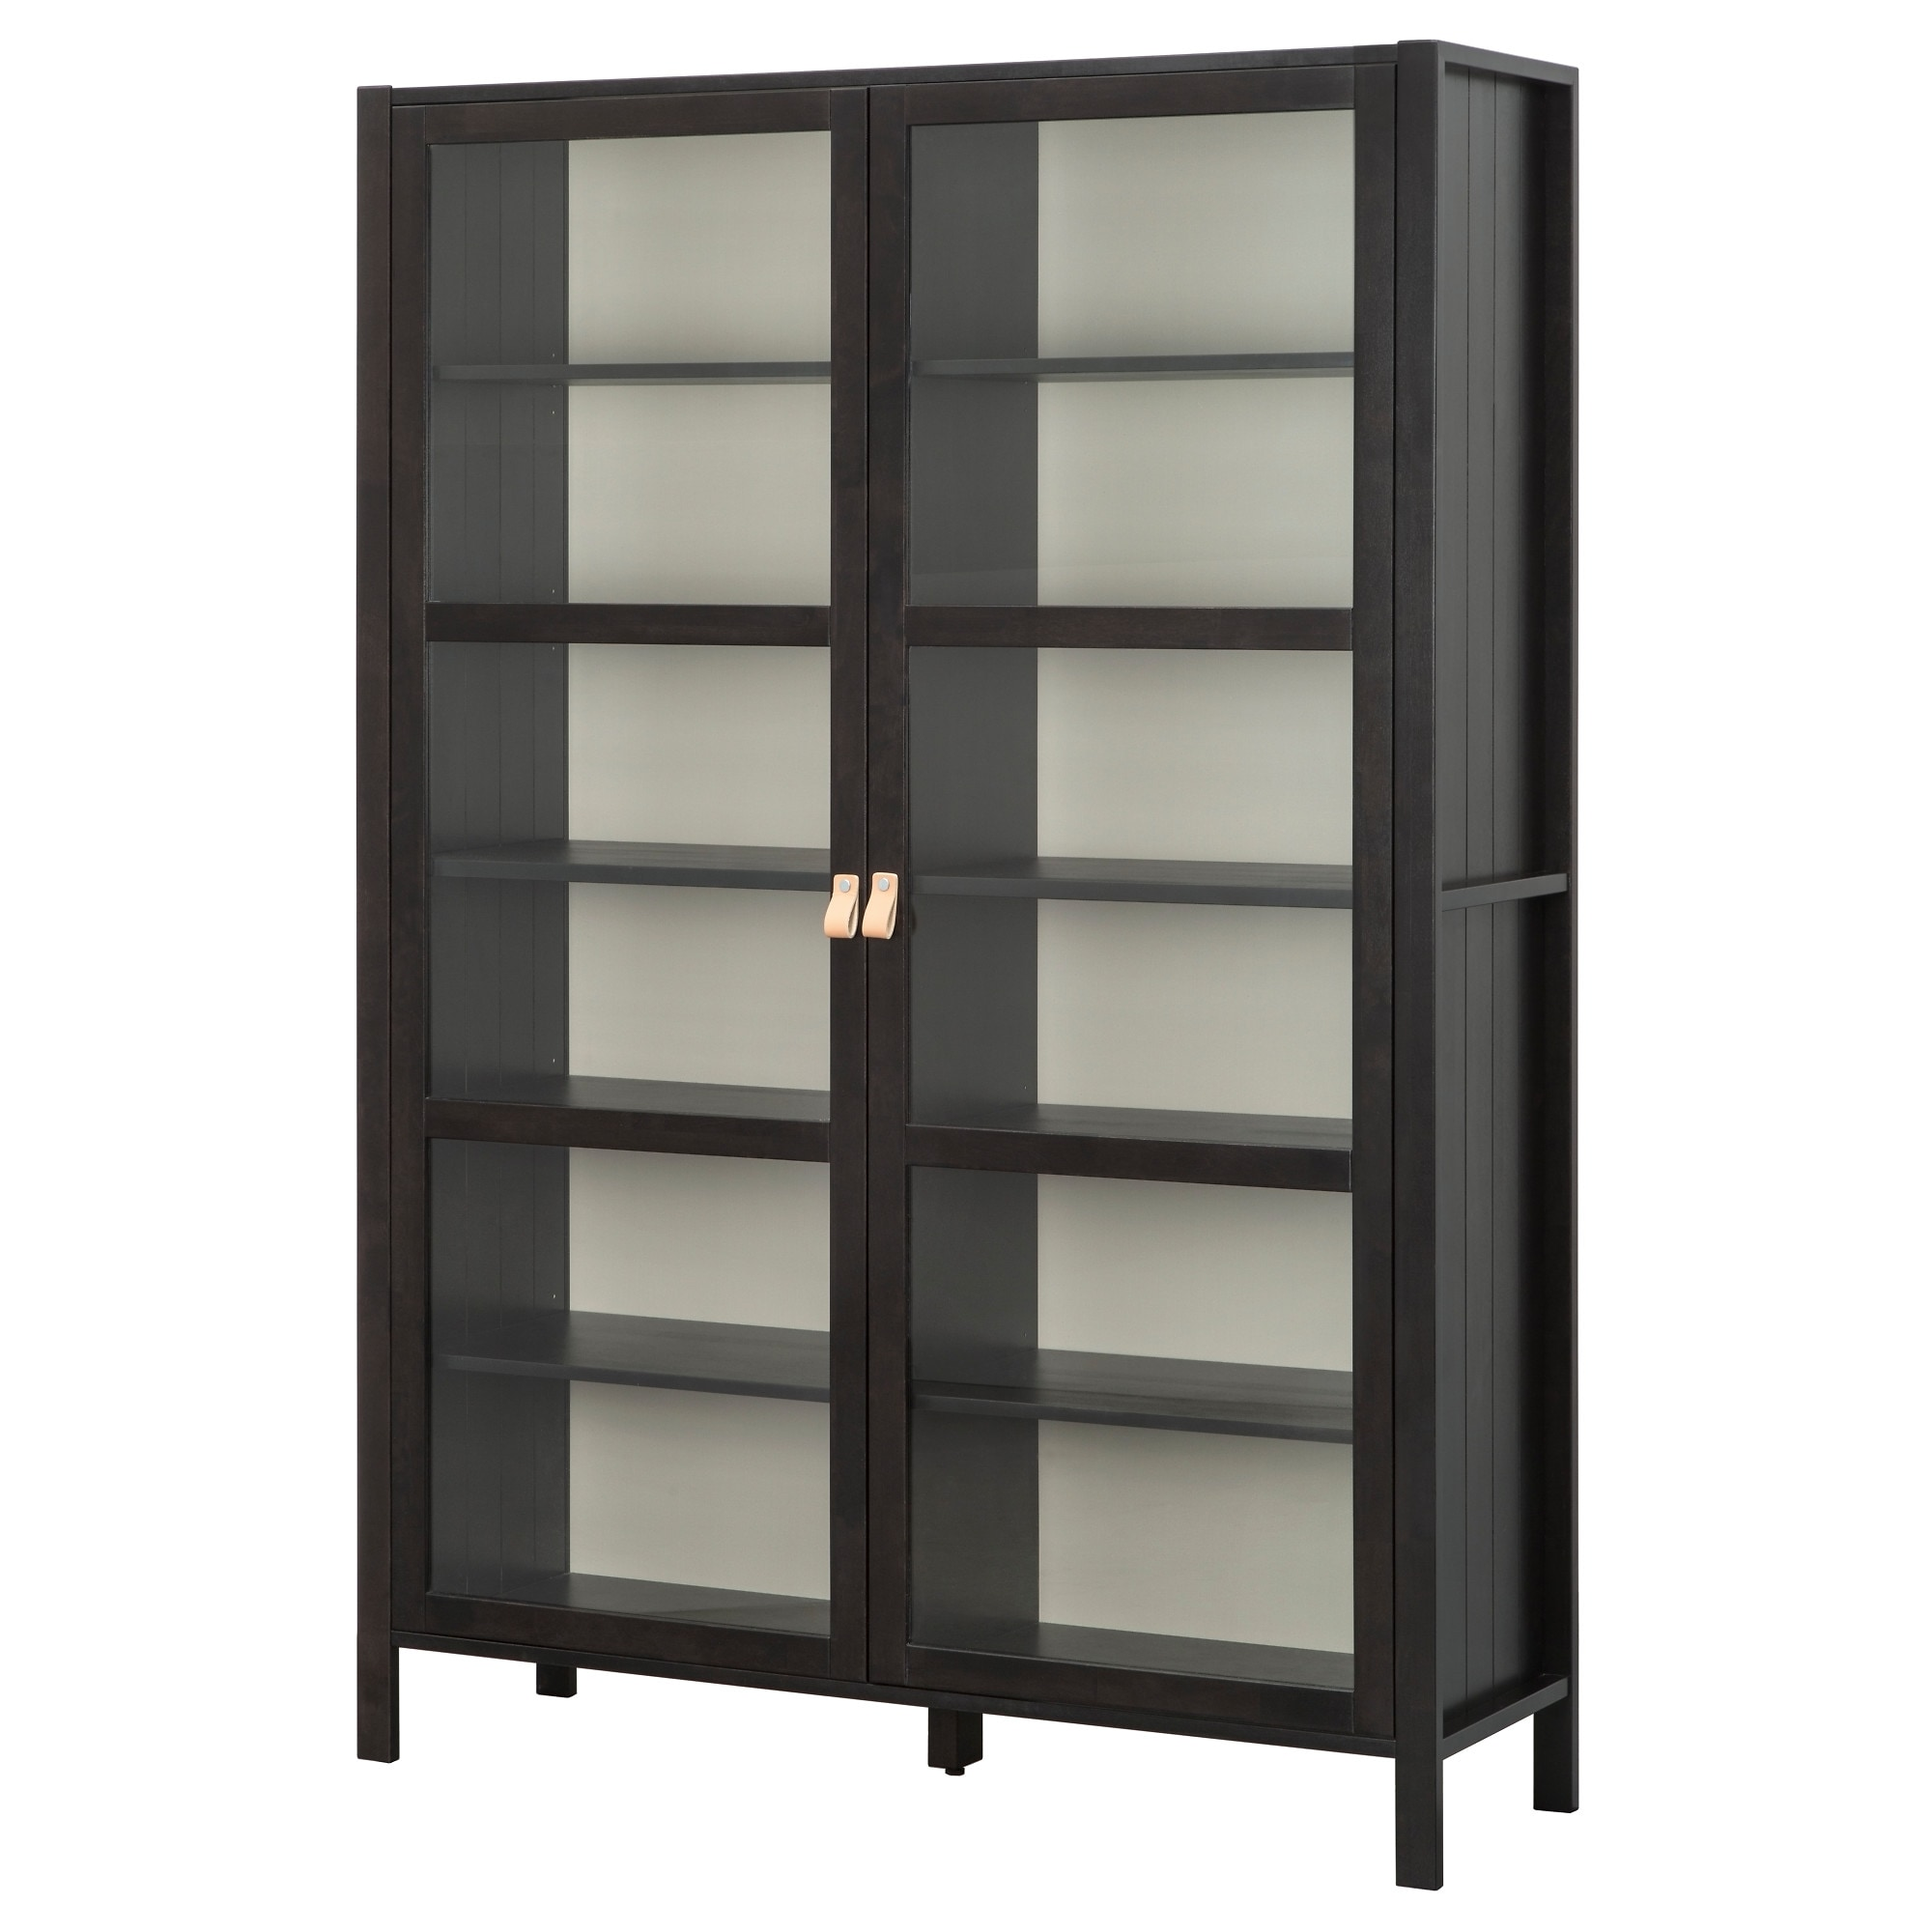 dining storage - cabinets & display cabinets - ikea